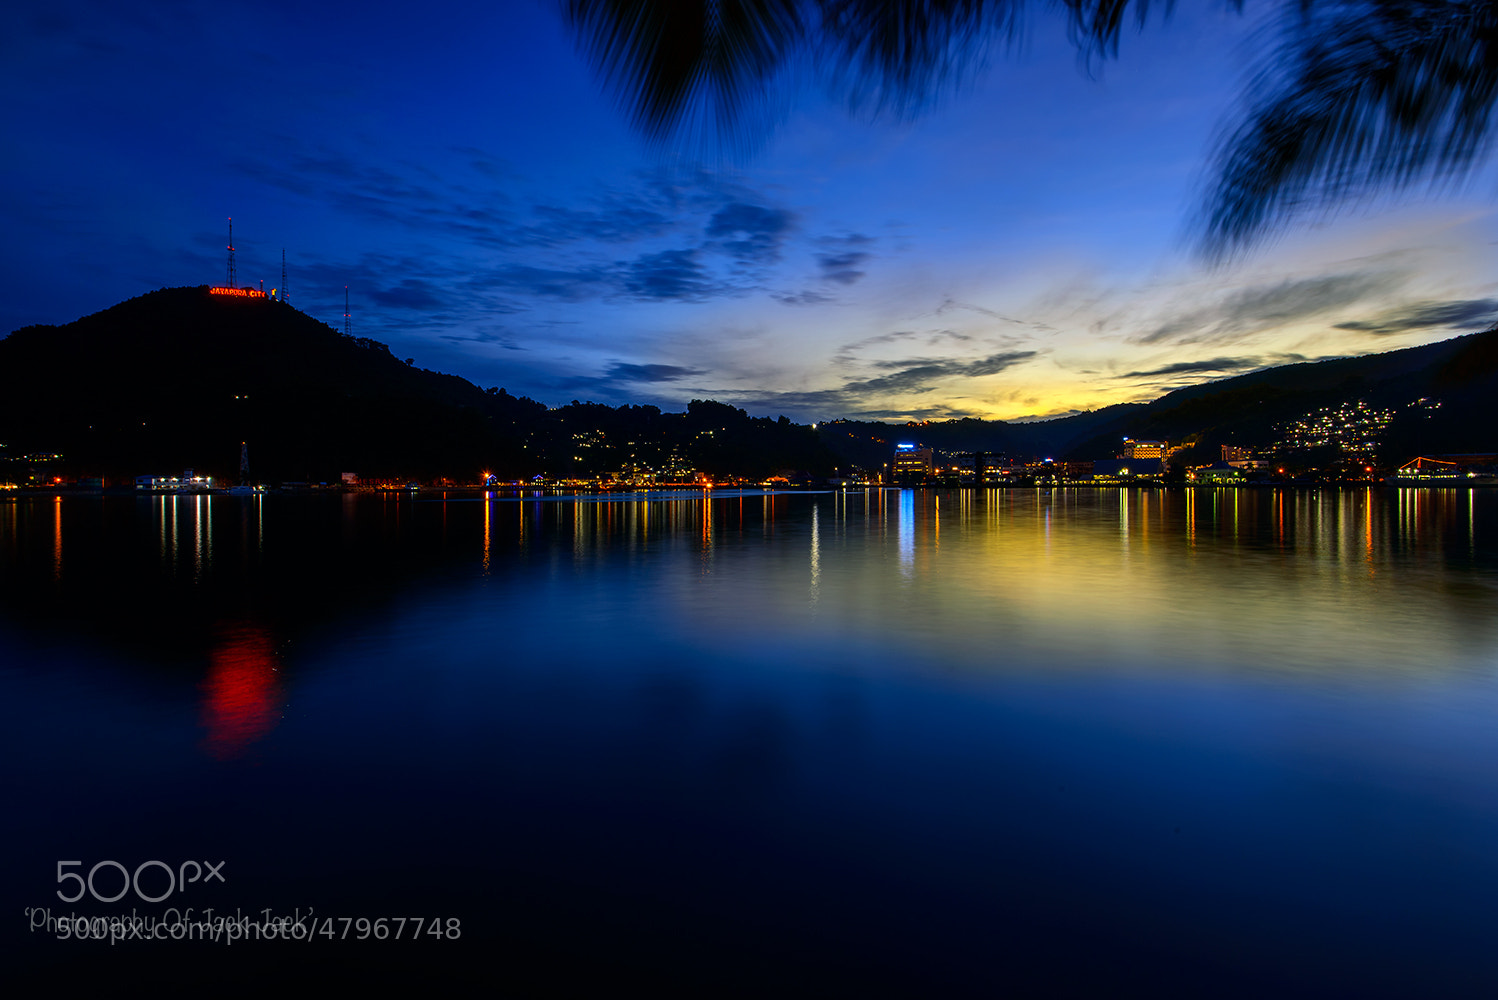 Photograph BLUE HOUR AT PAPUA ISLAND by HENDRIK PRIYANTO on 500px